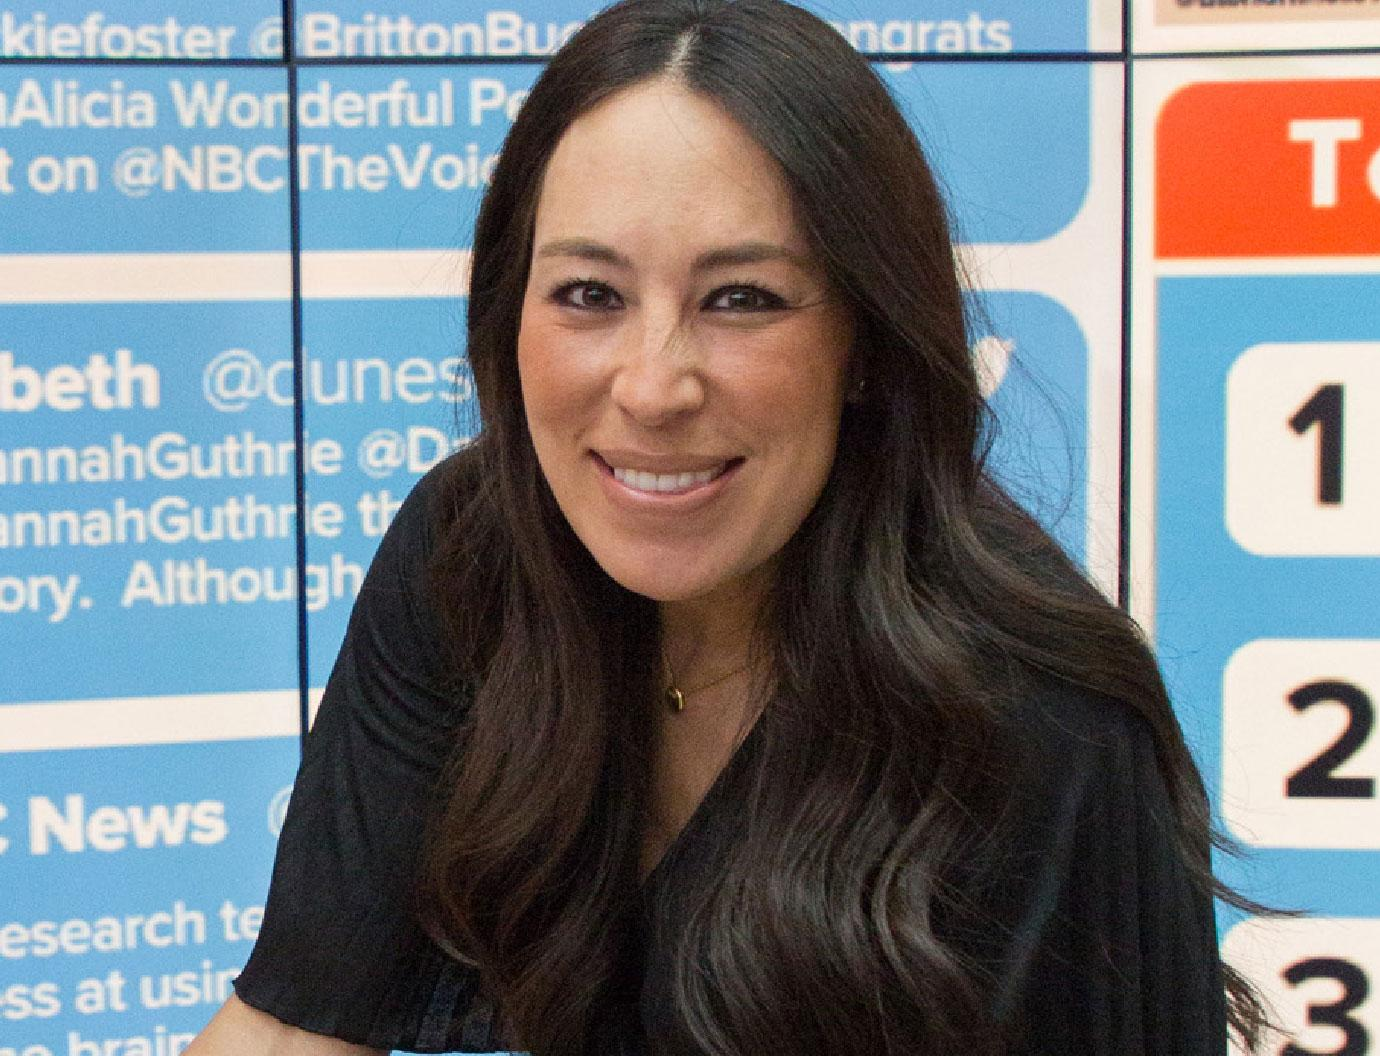 Joanna Gaines Shares New Baby Boy Name